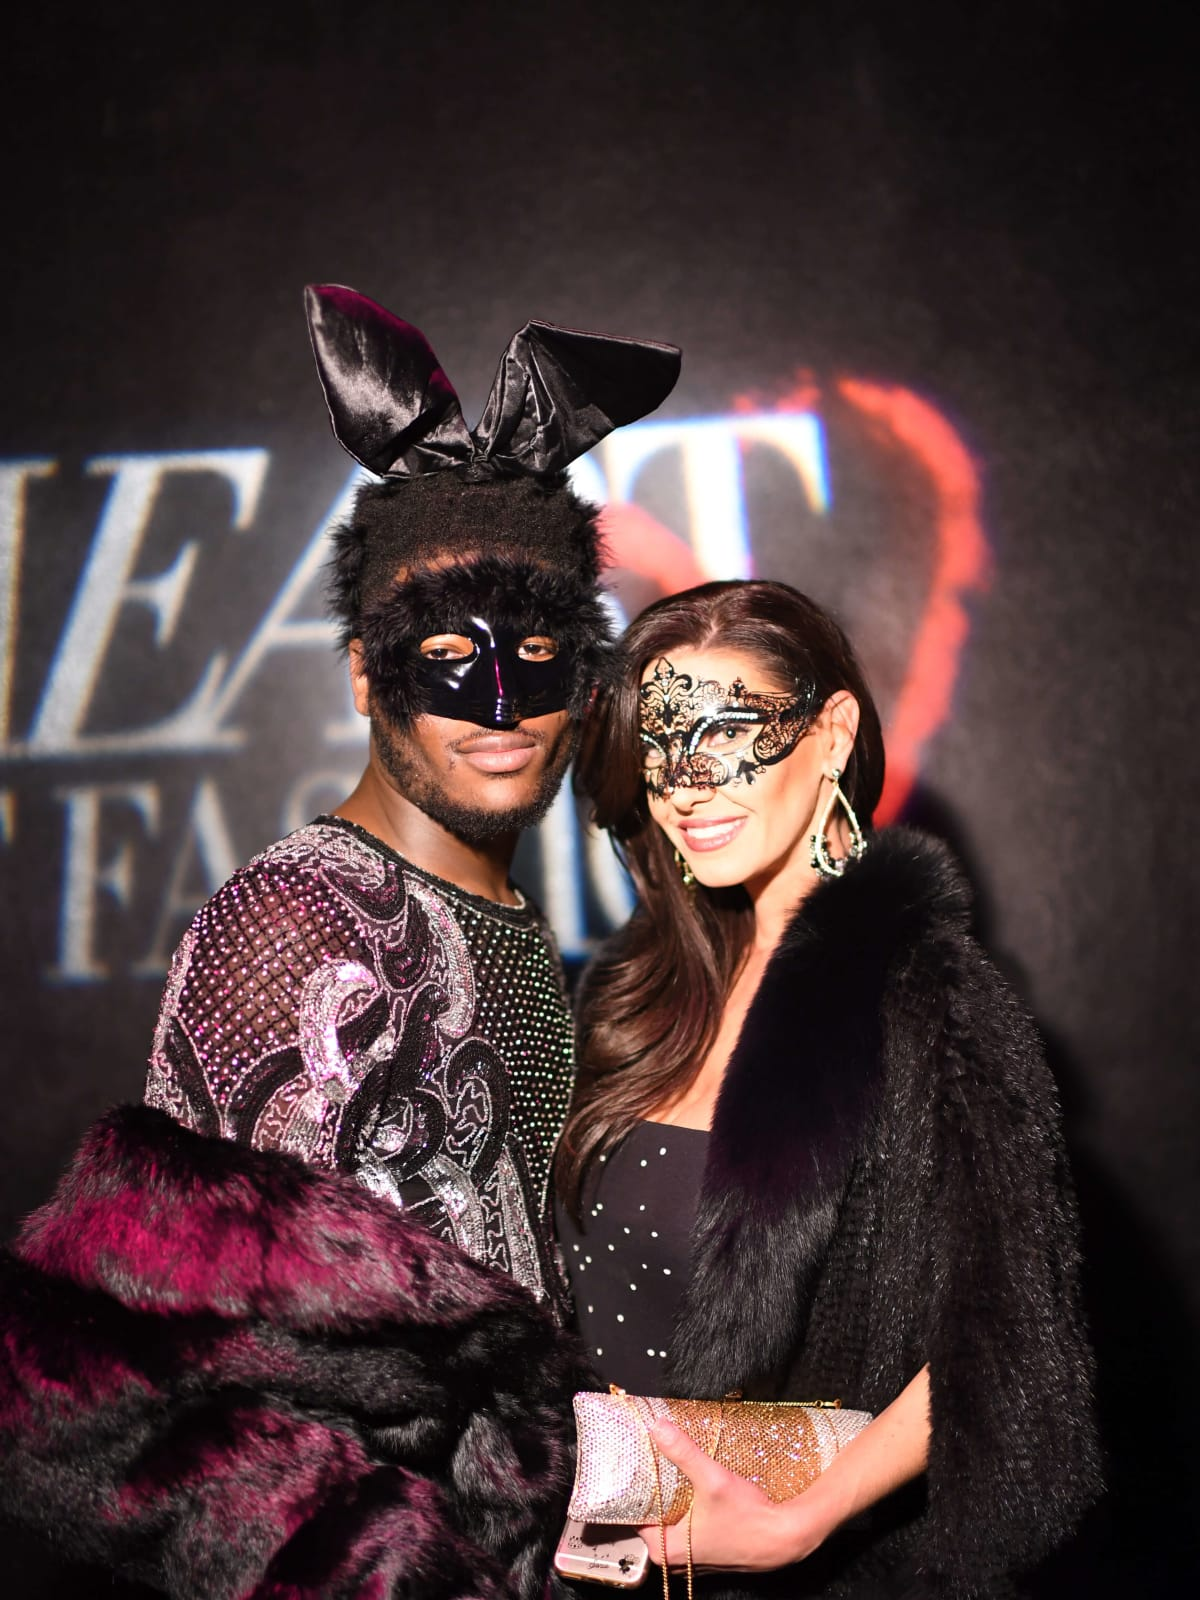 Heart of Fashion Masquerade Ball Joubaier Joubert, Nicole Lassiter